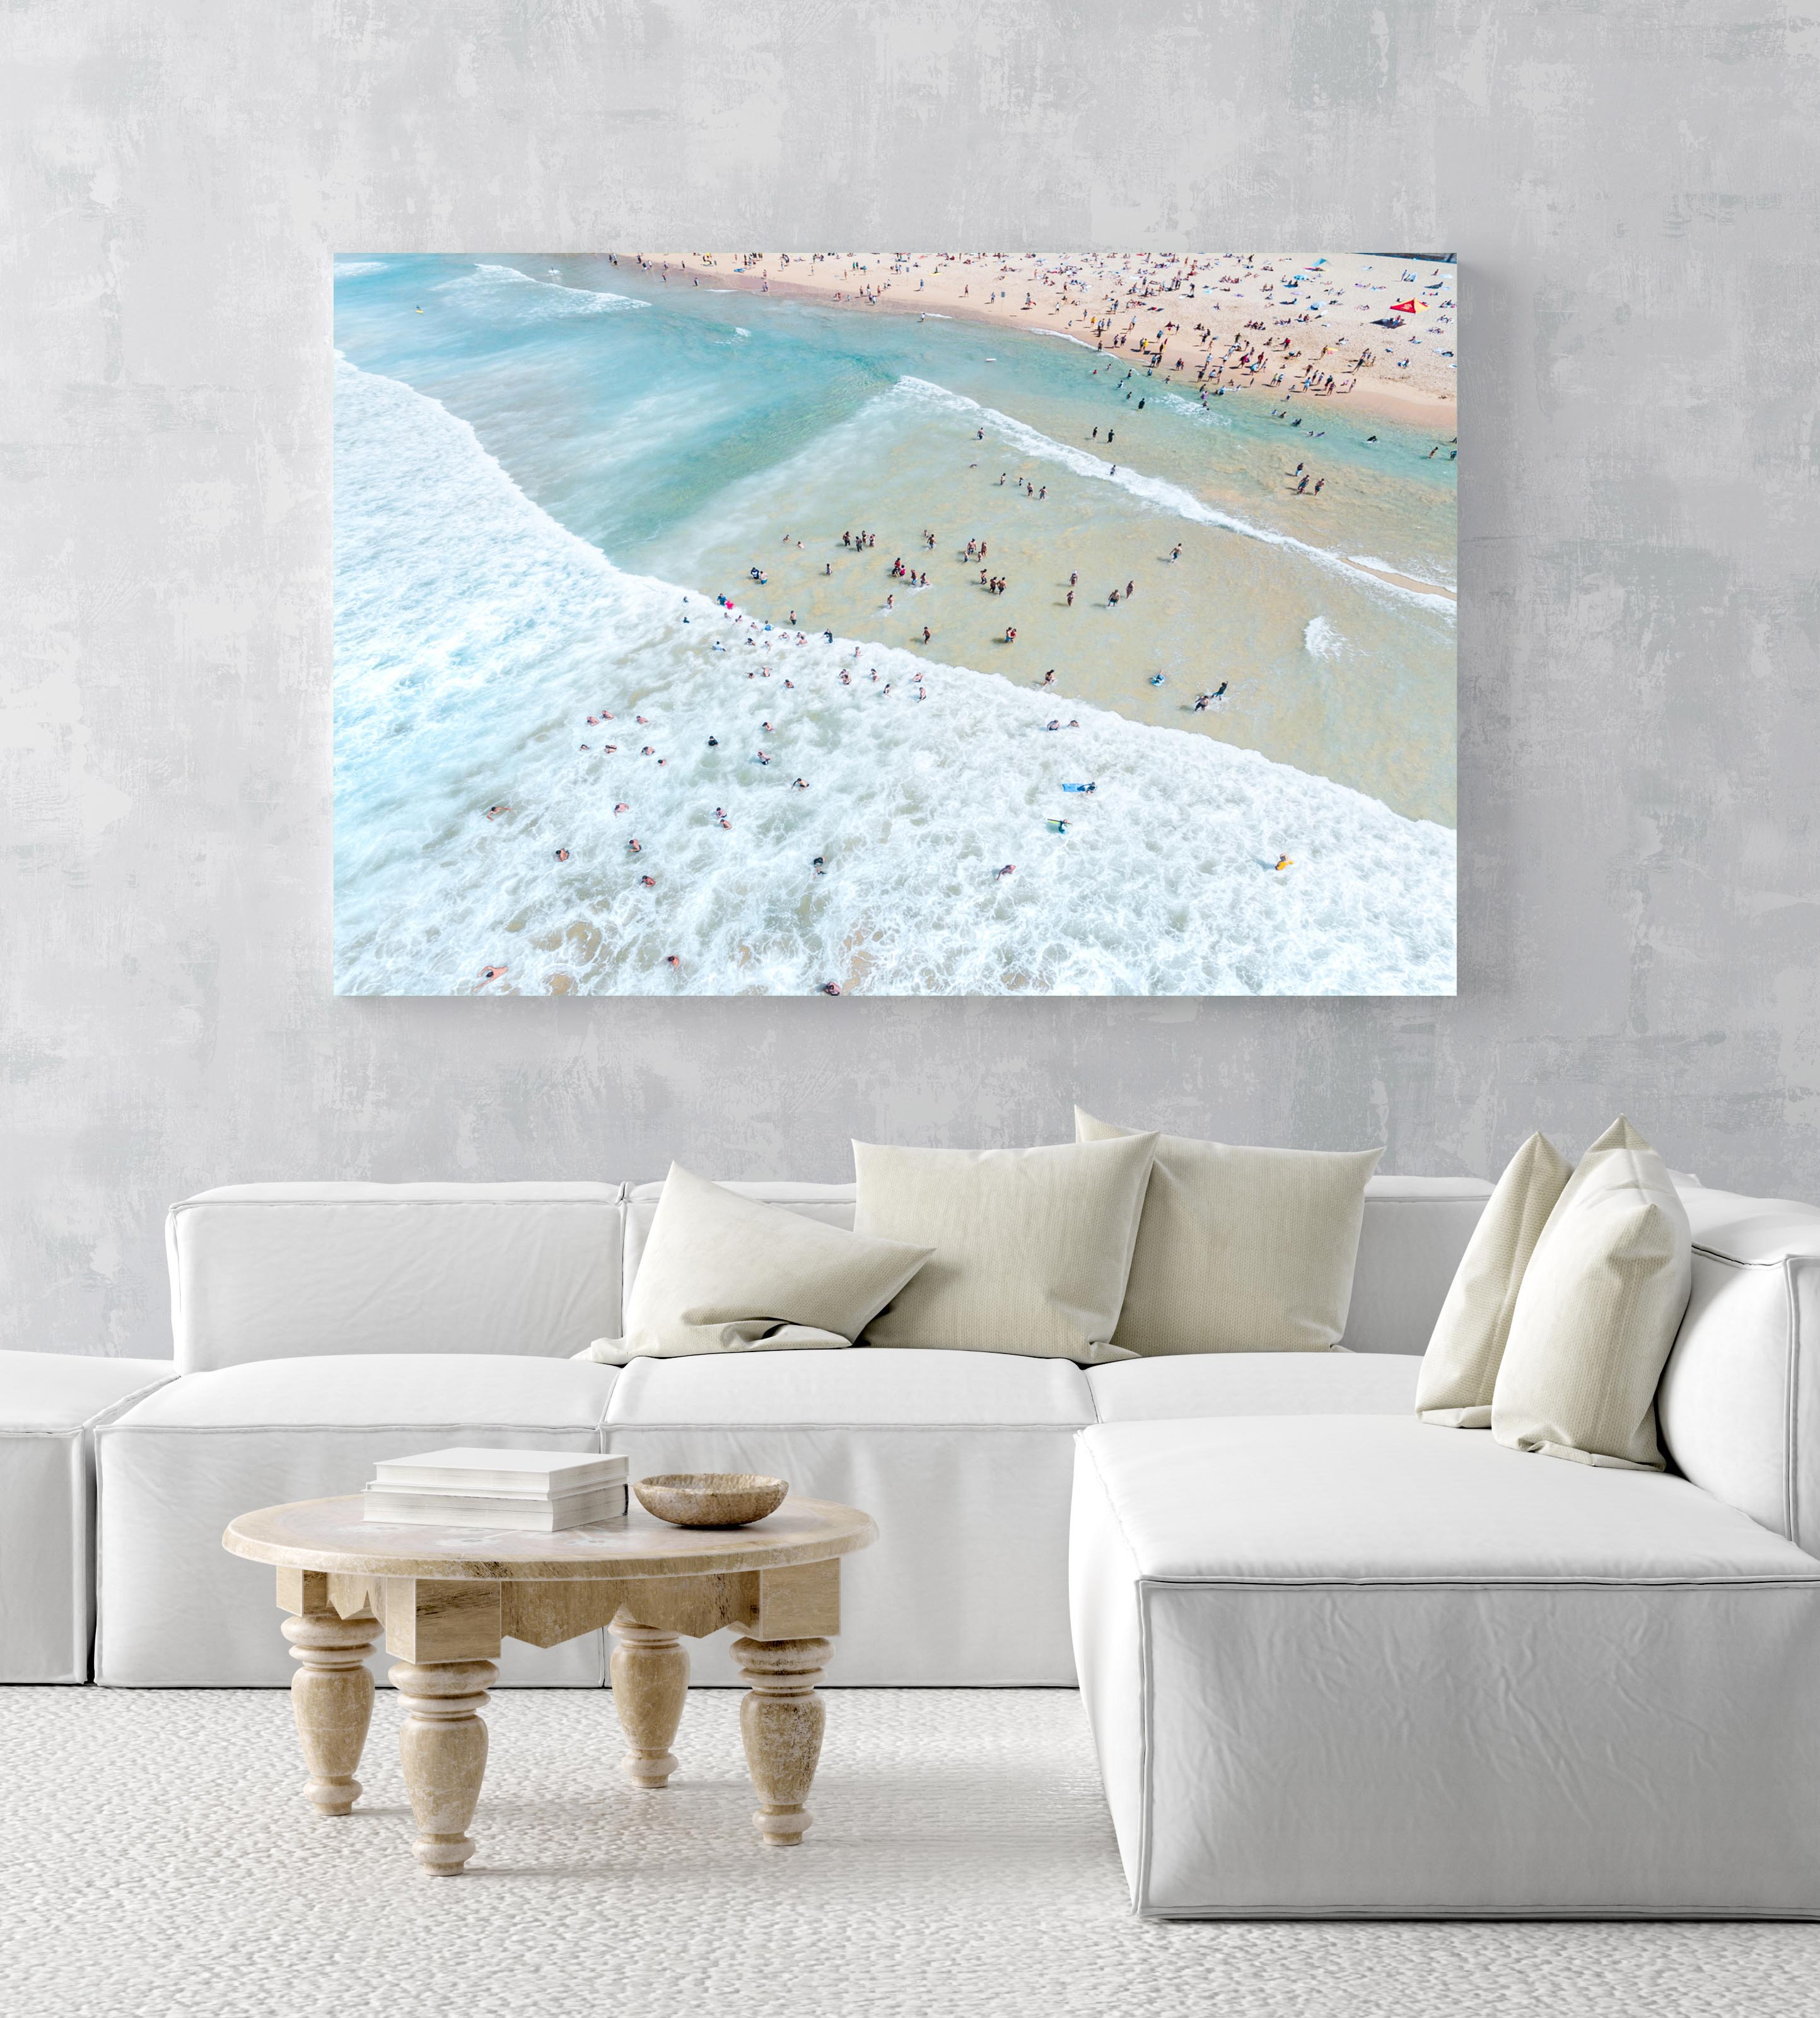 Crowd of swimmers in the waves at Manly Beach in Sydney in an acrylic/perspex frame